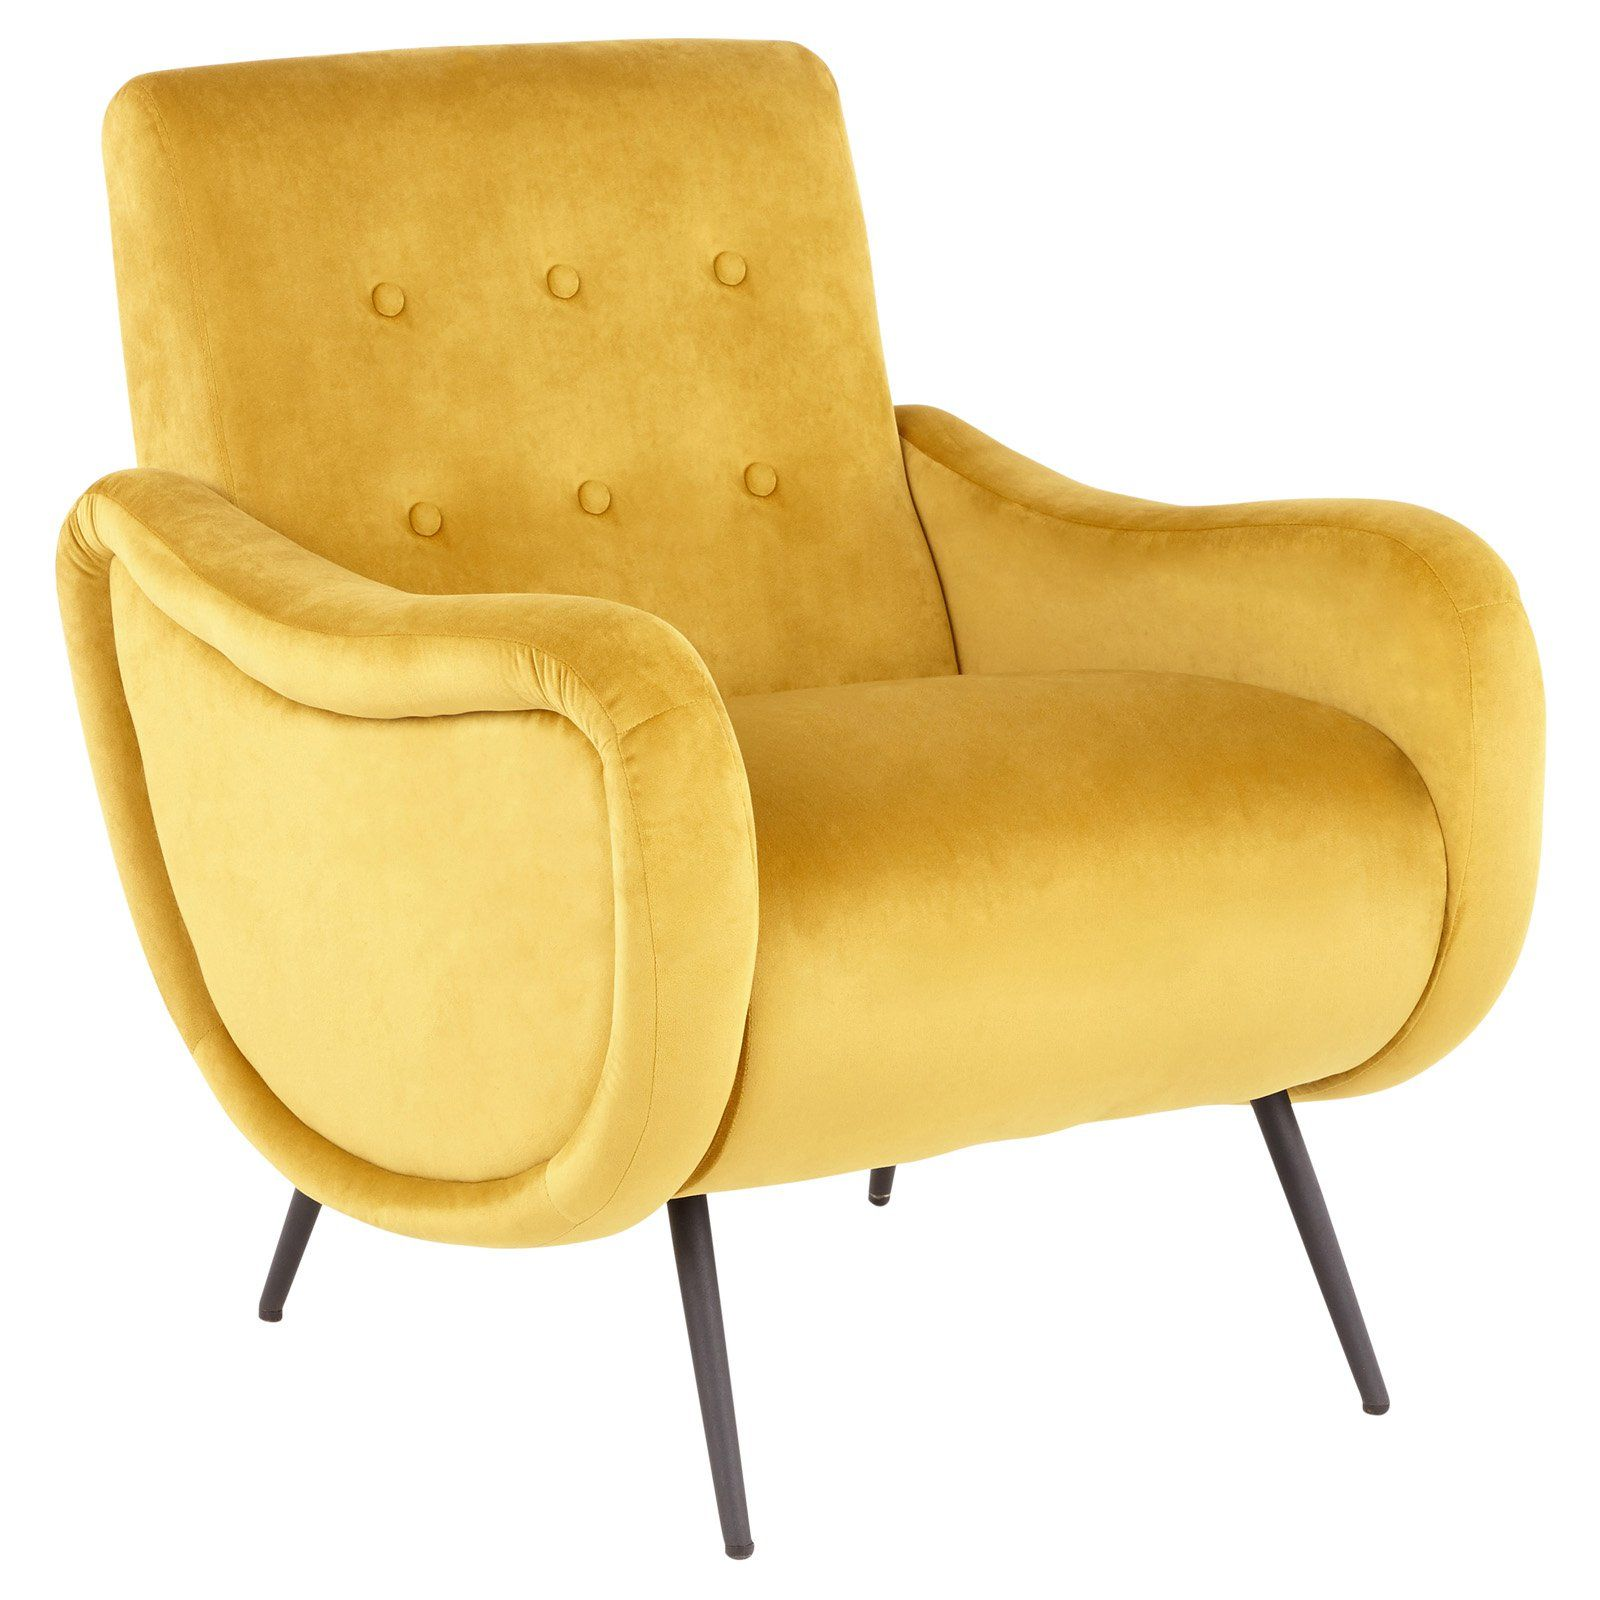 Lumisource Rafael Contemporary Lounge Chair Yellow In 2019